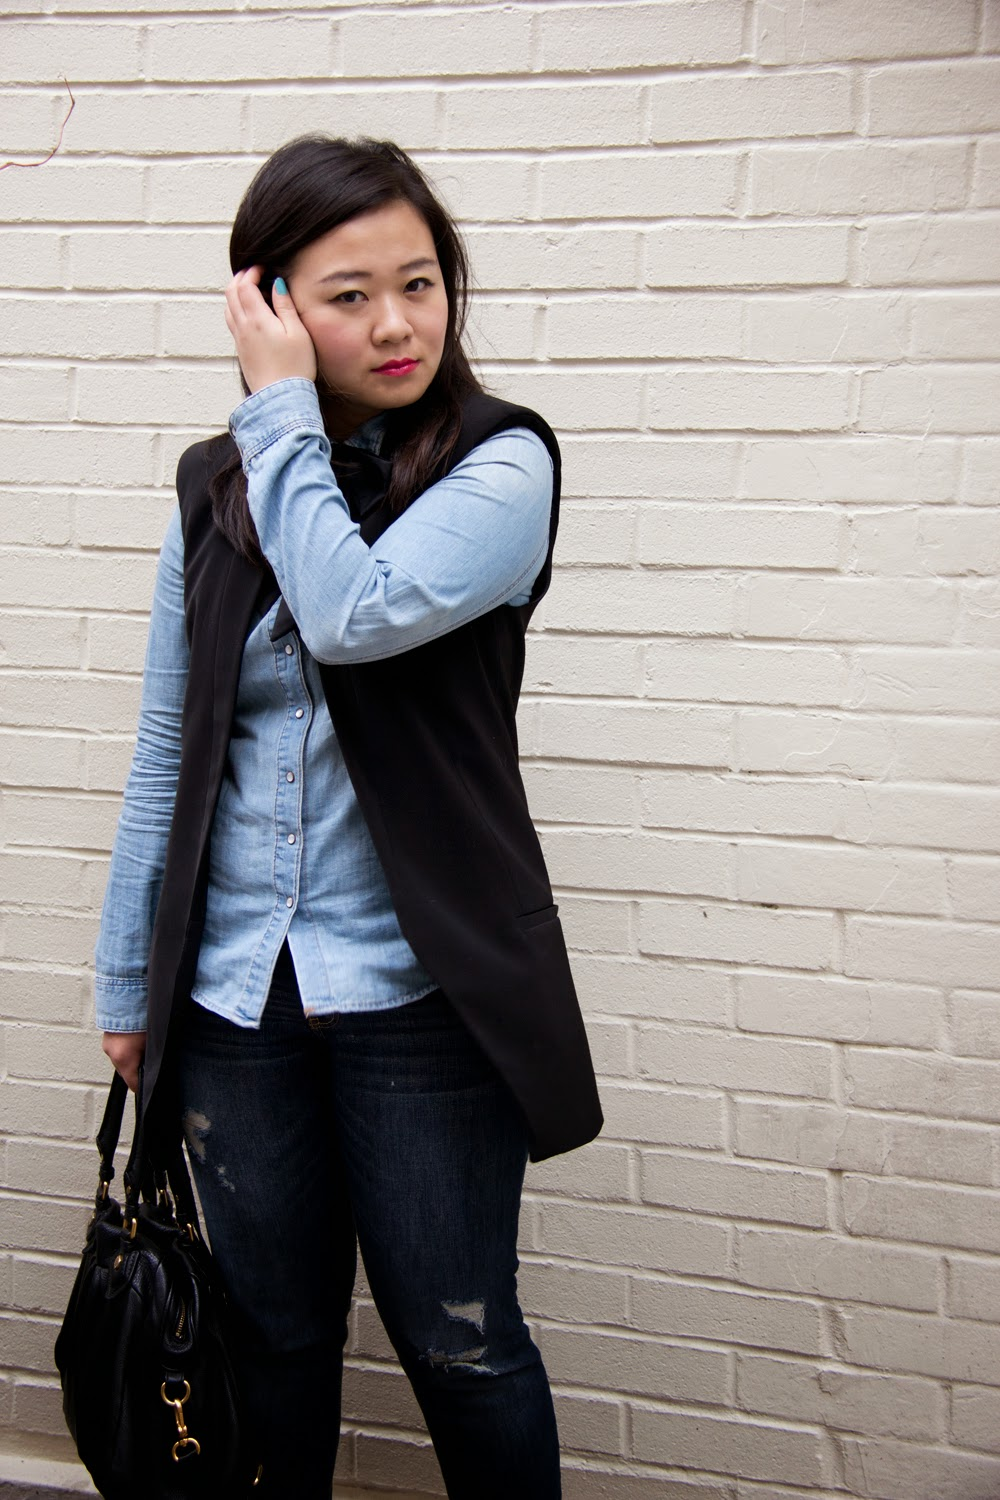 denim-on-denim, bow-tie,spring-outfit-look, Business-Casual, Toronto-Fashion-Blogger